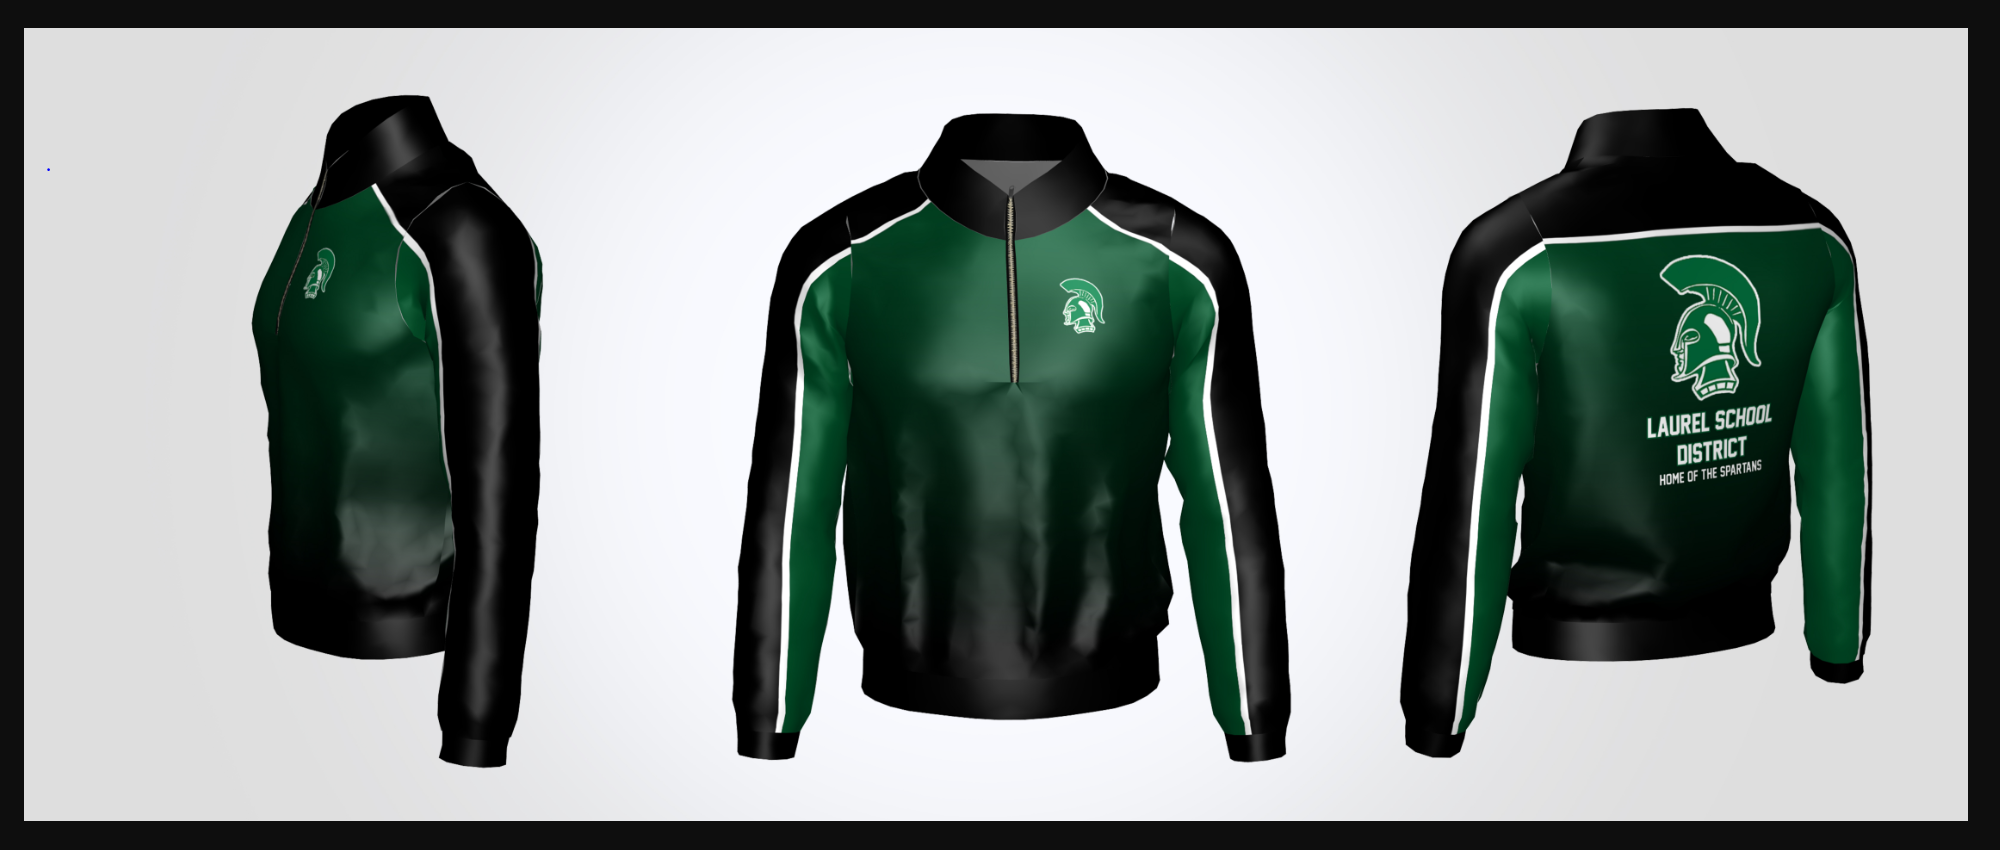 Laurel School District 1/4 Zip Jacket